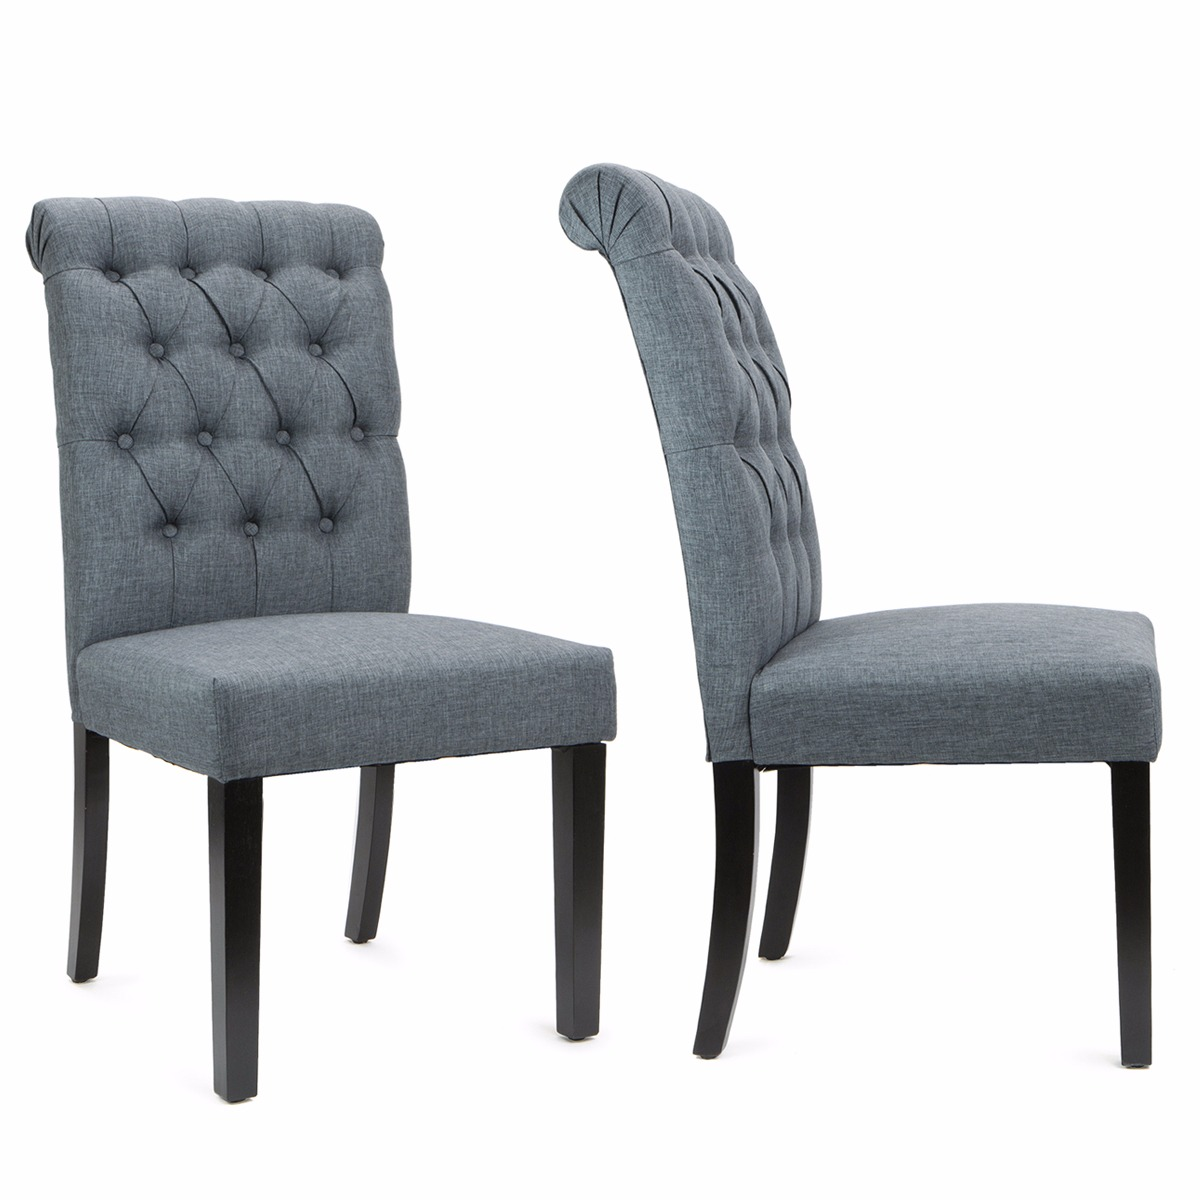 Barton Set of (2) Dining Room Side Chair Tufted Padded Seat High Backrest Armless Wooden Legs, Grey